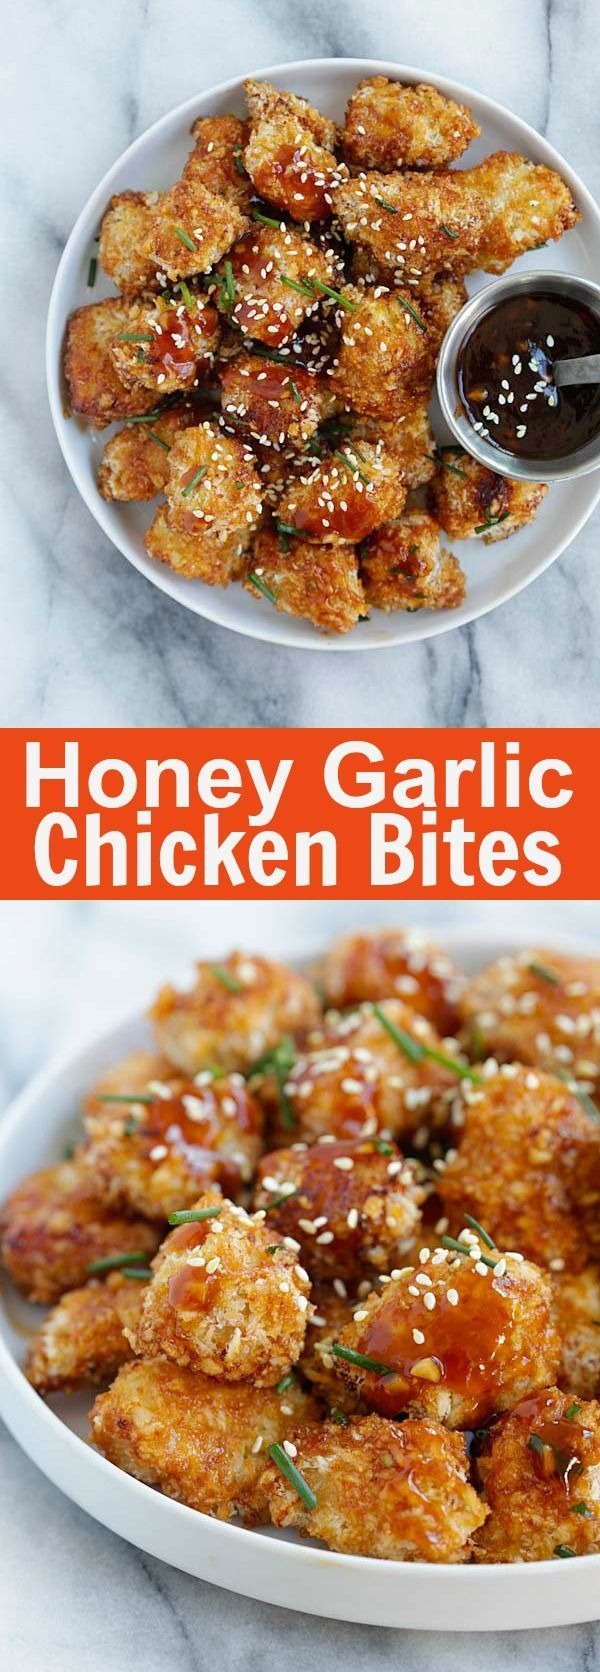 Honey Garlic Chicken Bites Panko Crusted Baked Chicken Nuggets With A Sweet And Savory